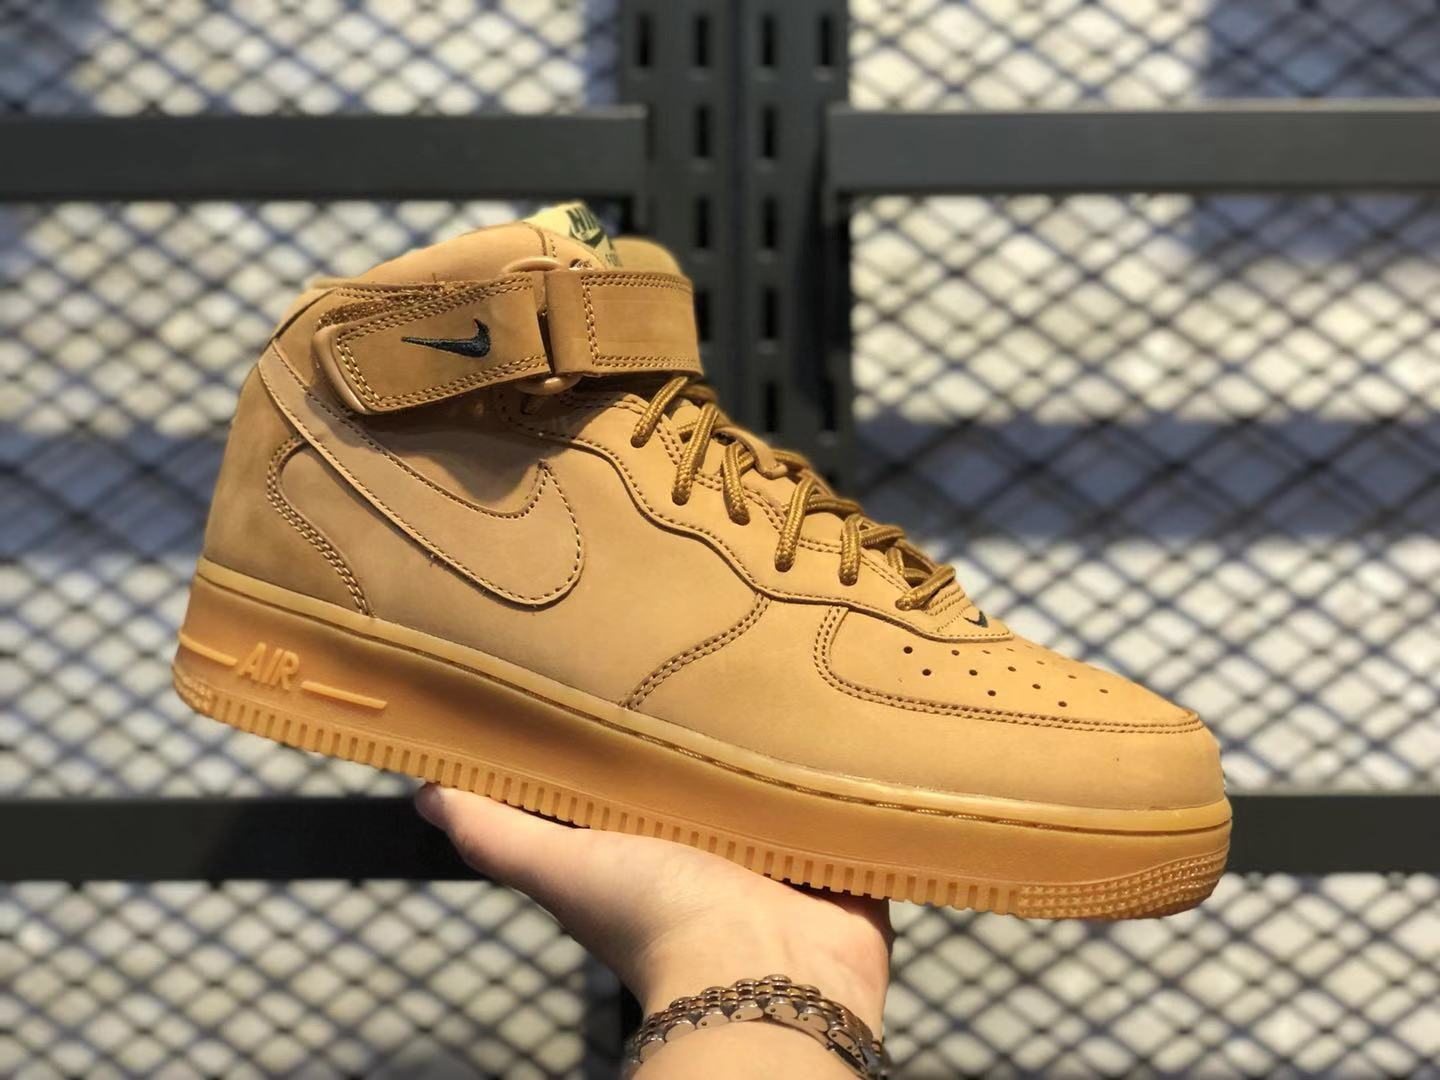 Nike Air Force 1 Mid Flax Gum/Outdoor Green-Flax Sneakers To Buy 715889-200